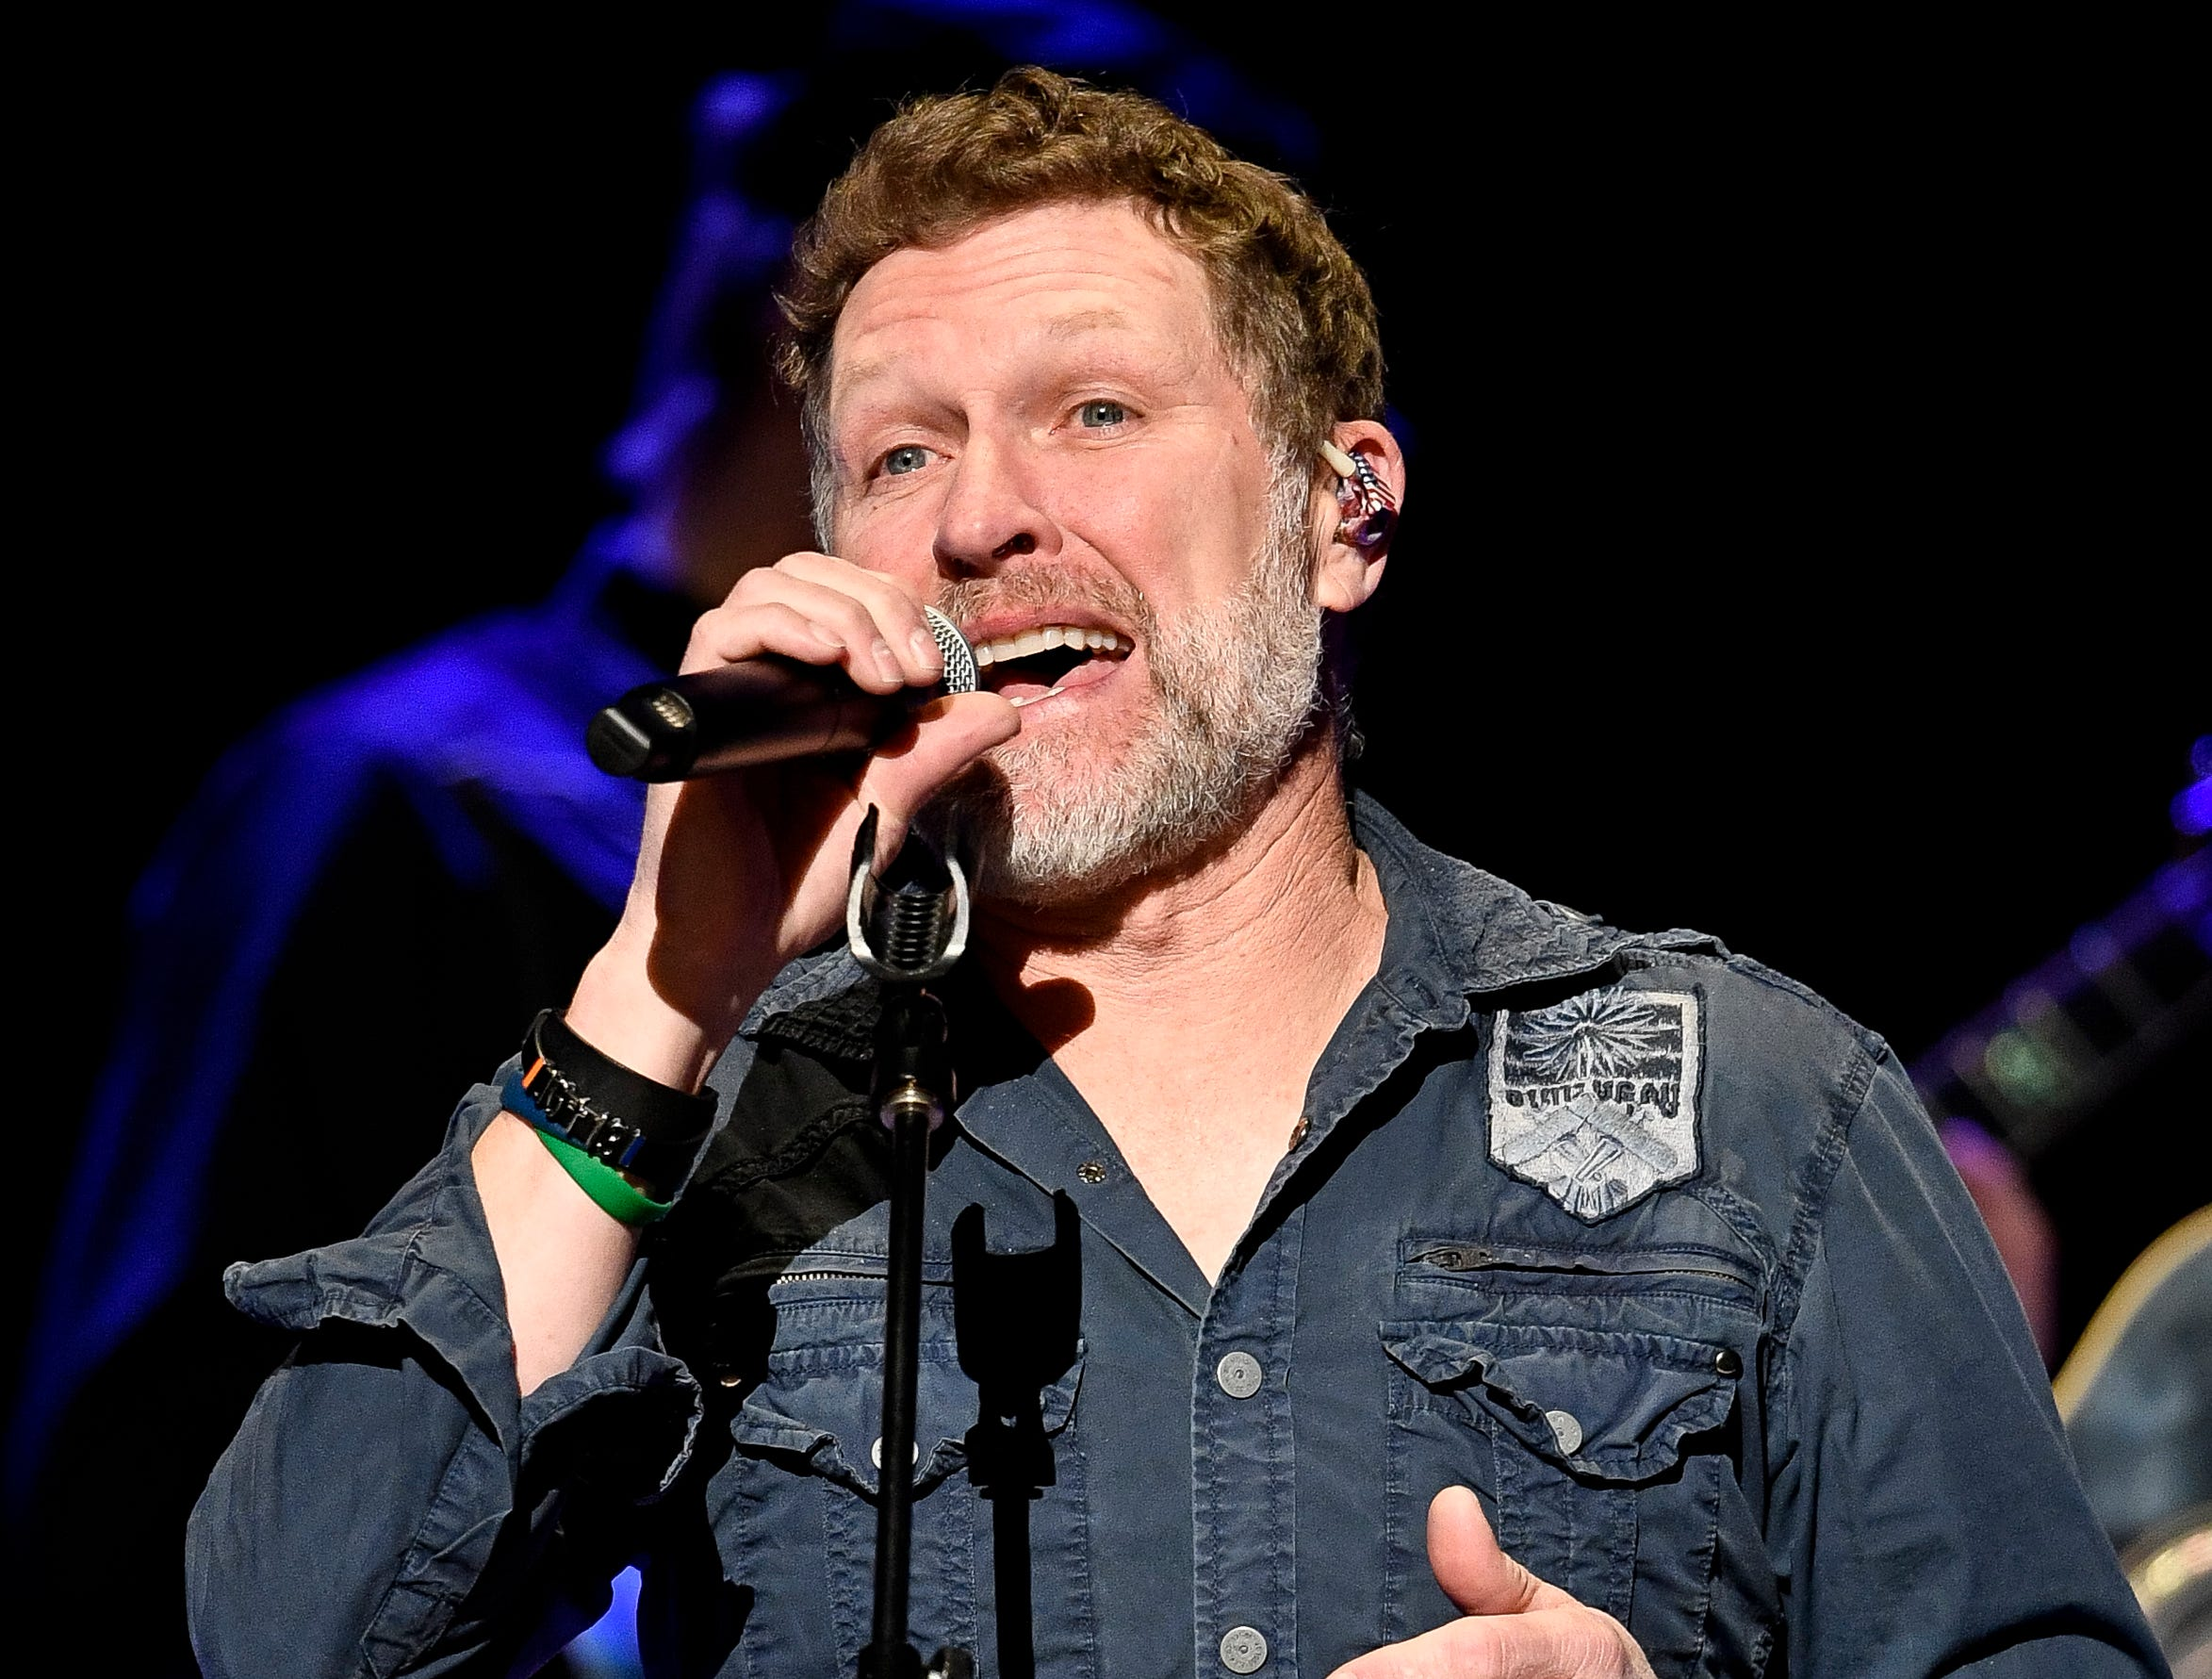 Craig Morgan performs during the C'Ya On The Flipside Benefit Concert at the Grand Ole Opry House in Nashville, Tenn., Wednesday, Jan. 9, 2019.